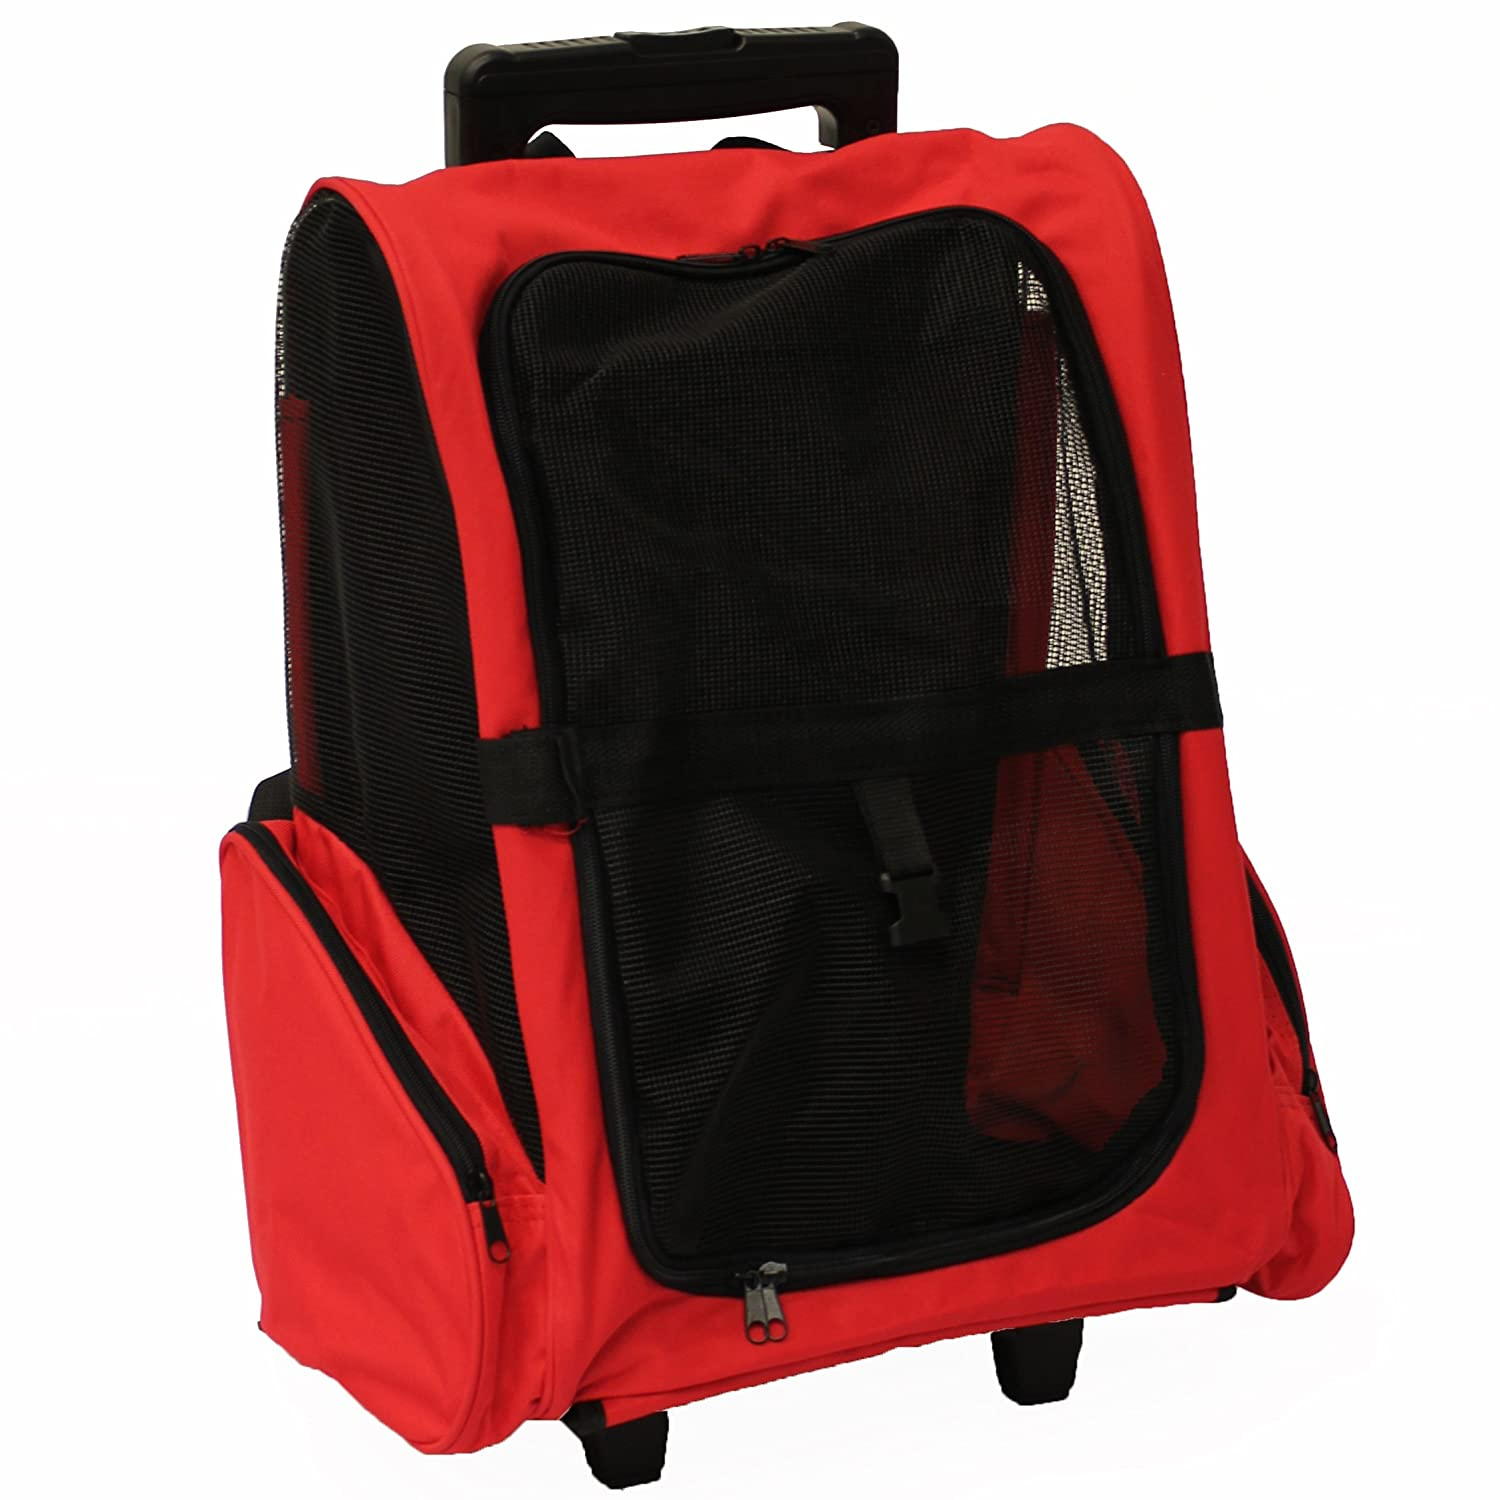 Mool Pet Carrier Backpack with Integrated Trolley and Telescopic Handle 36 x 36x49 cm Red